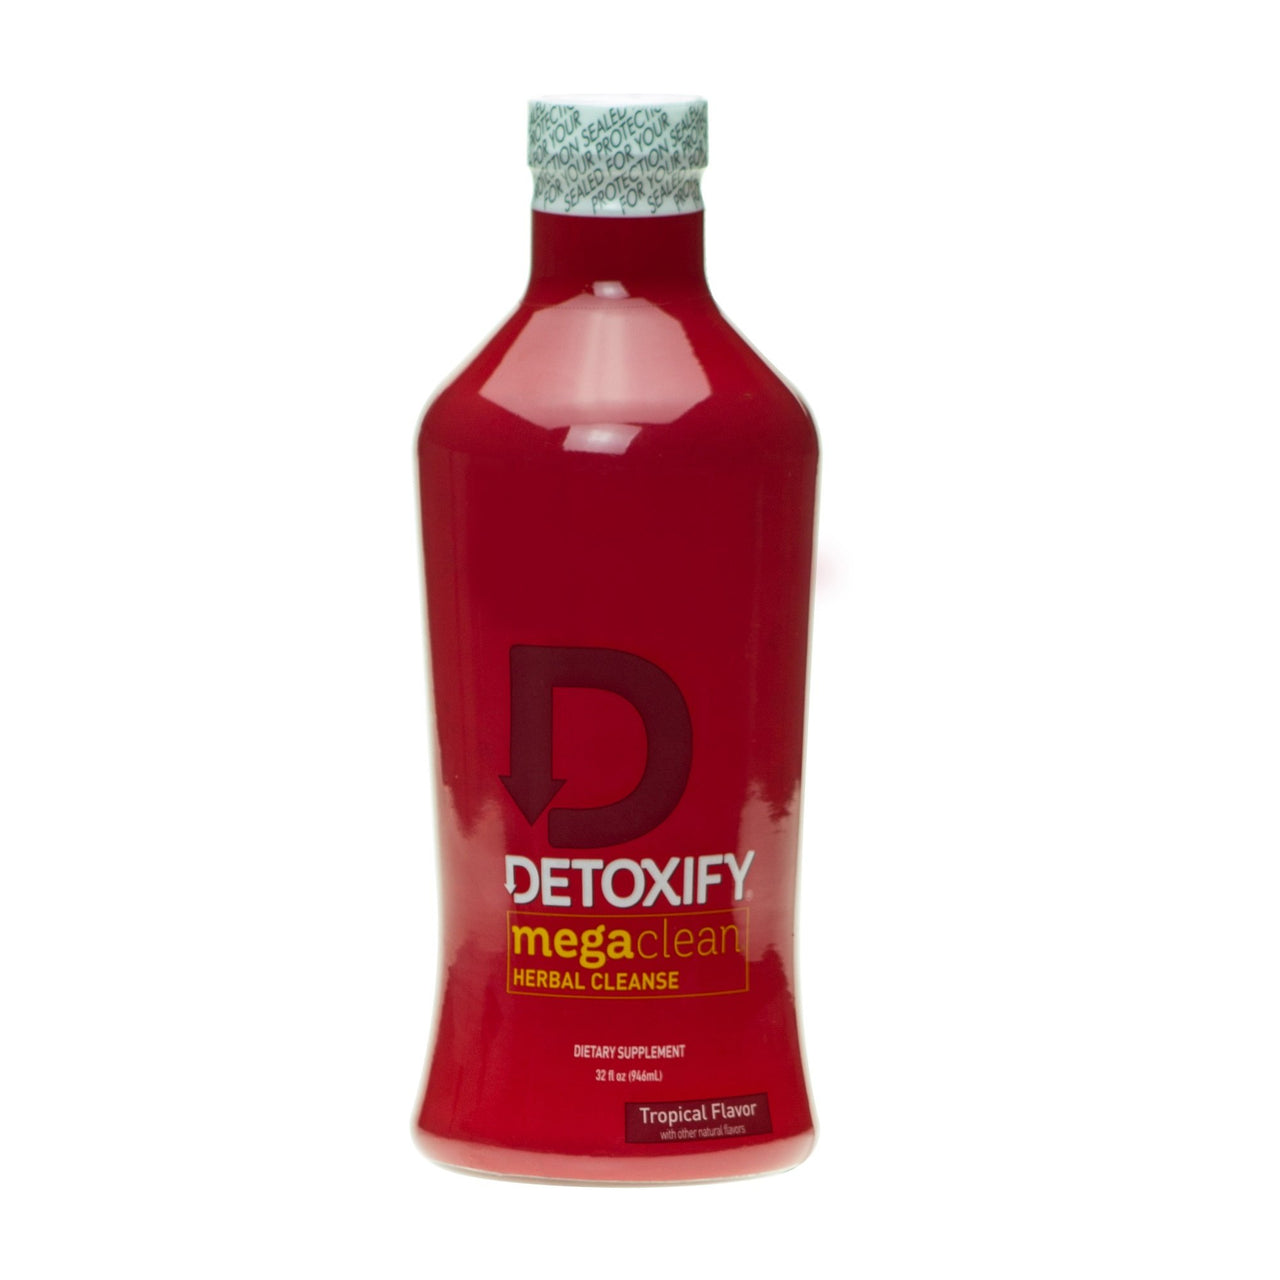 Detoxify Mega clean herbal cleanse 32oz - Tropical Flavour